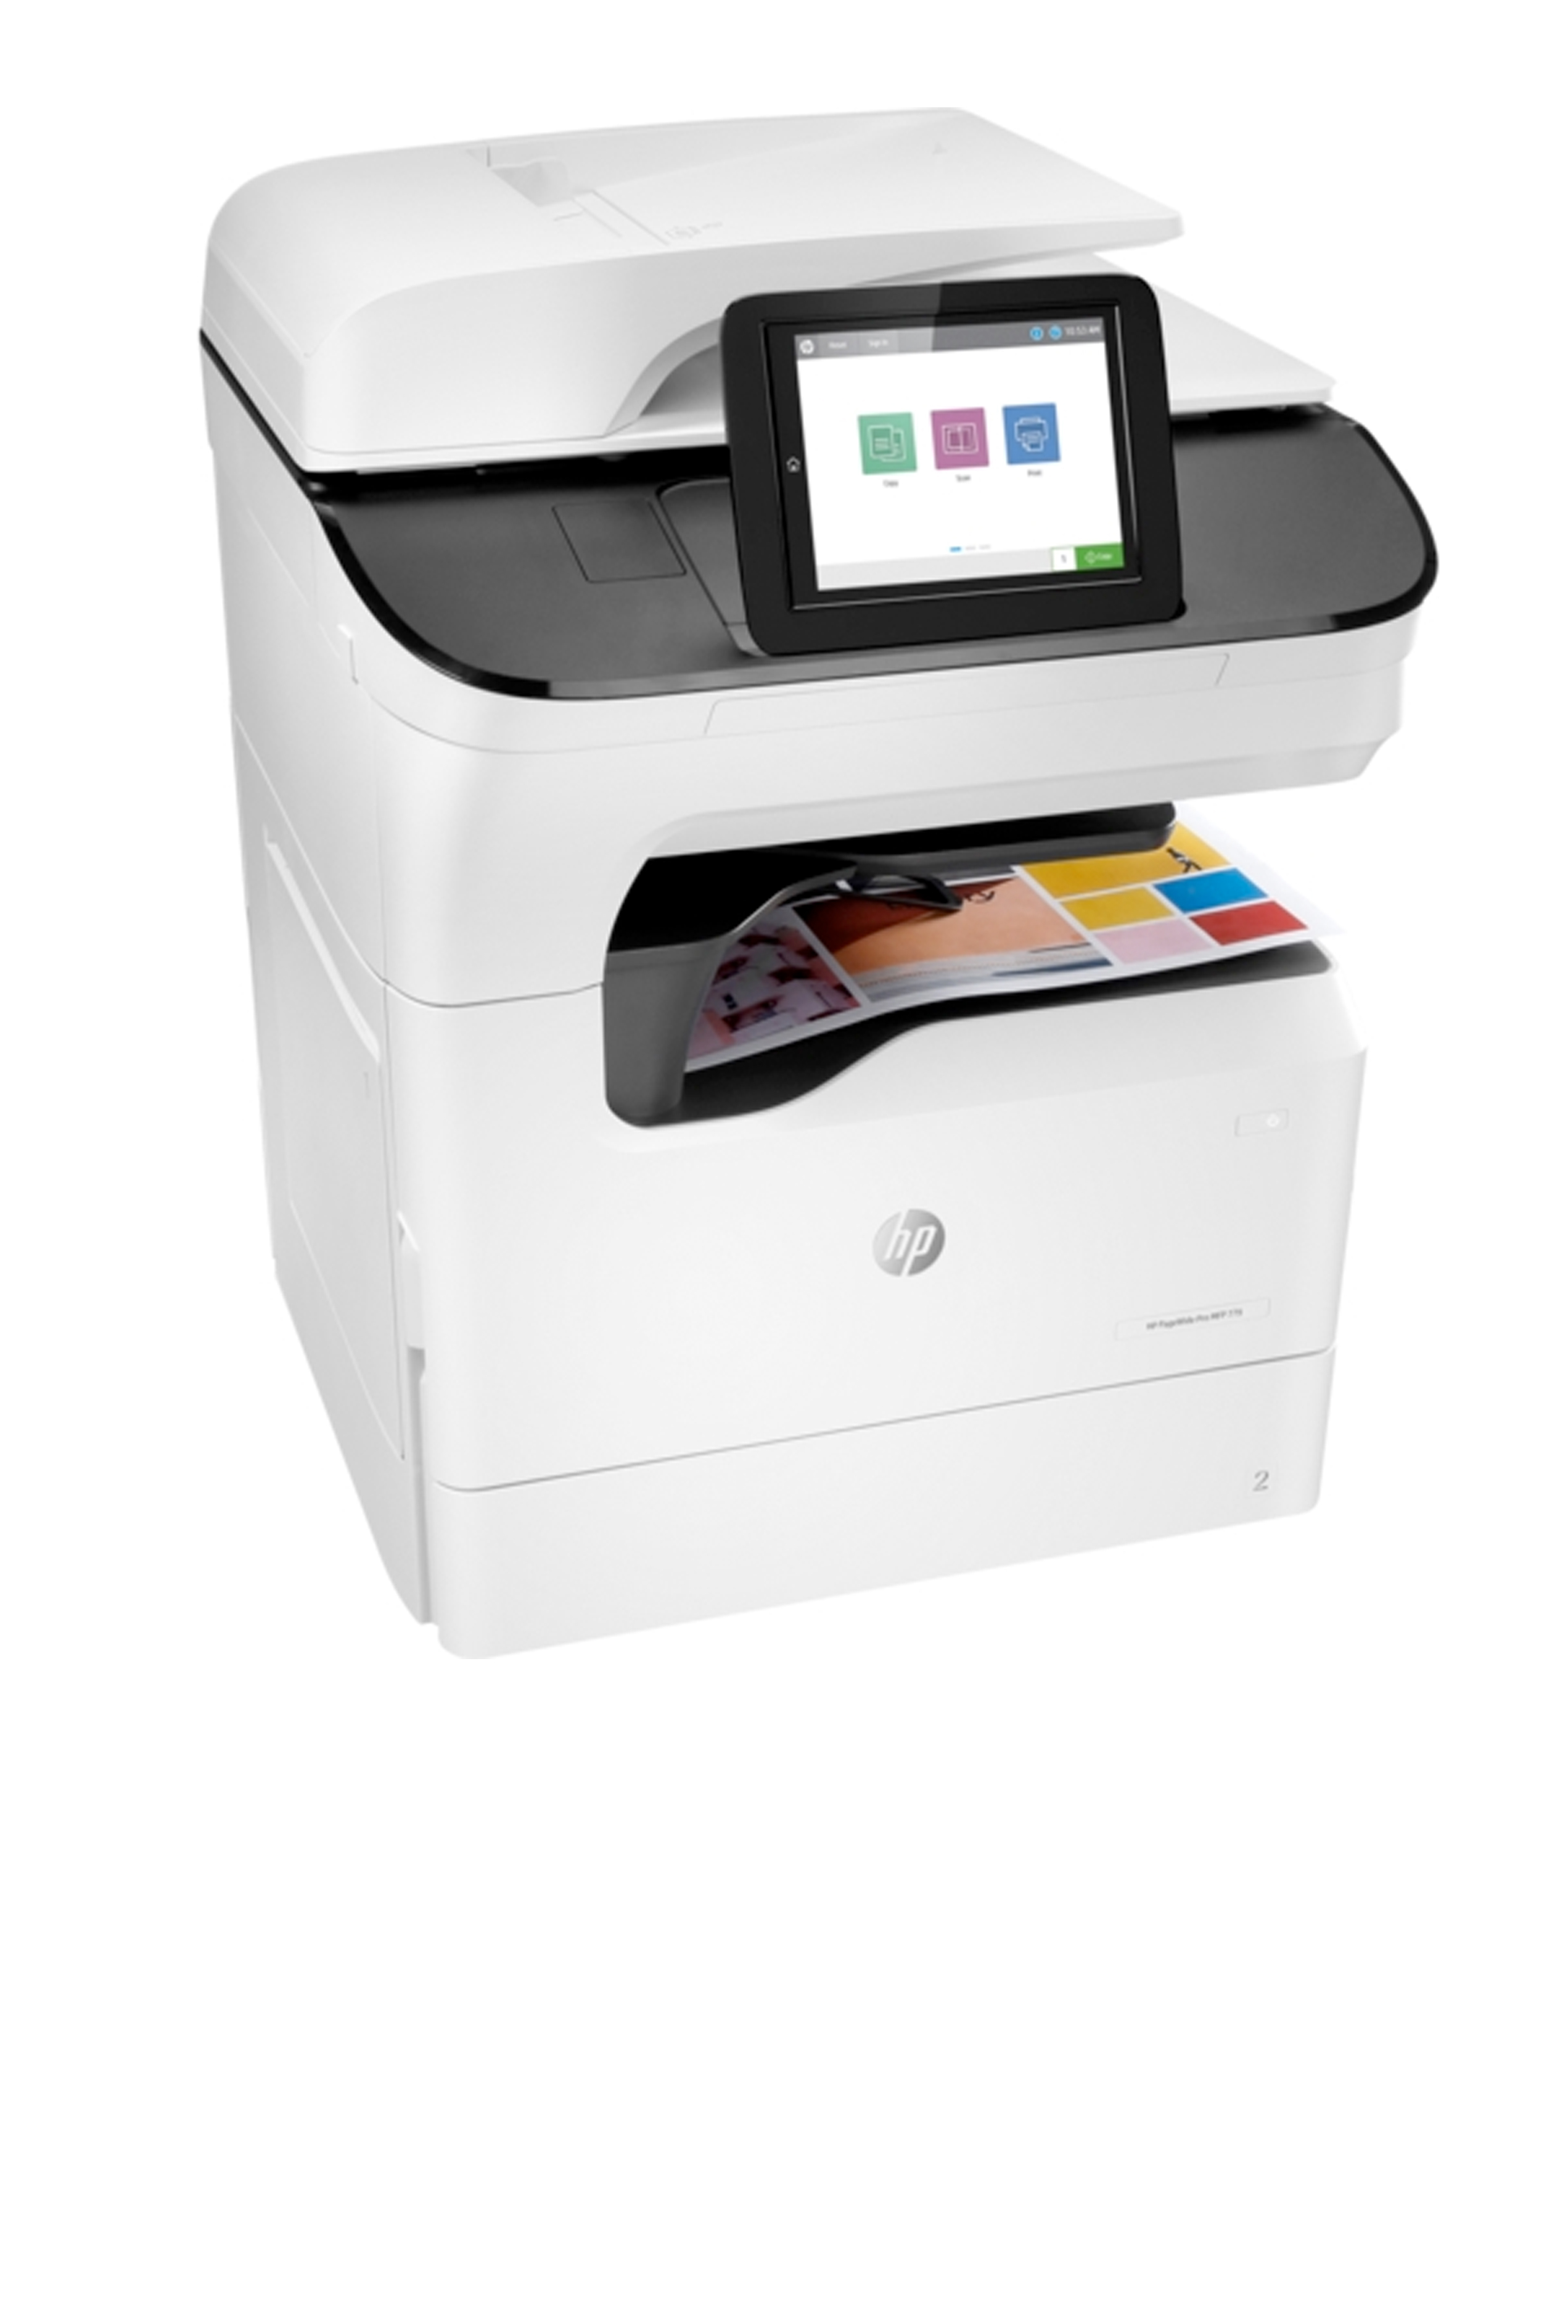 HP PAGEWIDE PRO 779DNS MFP PRINTER (4PZ46A#B1H)